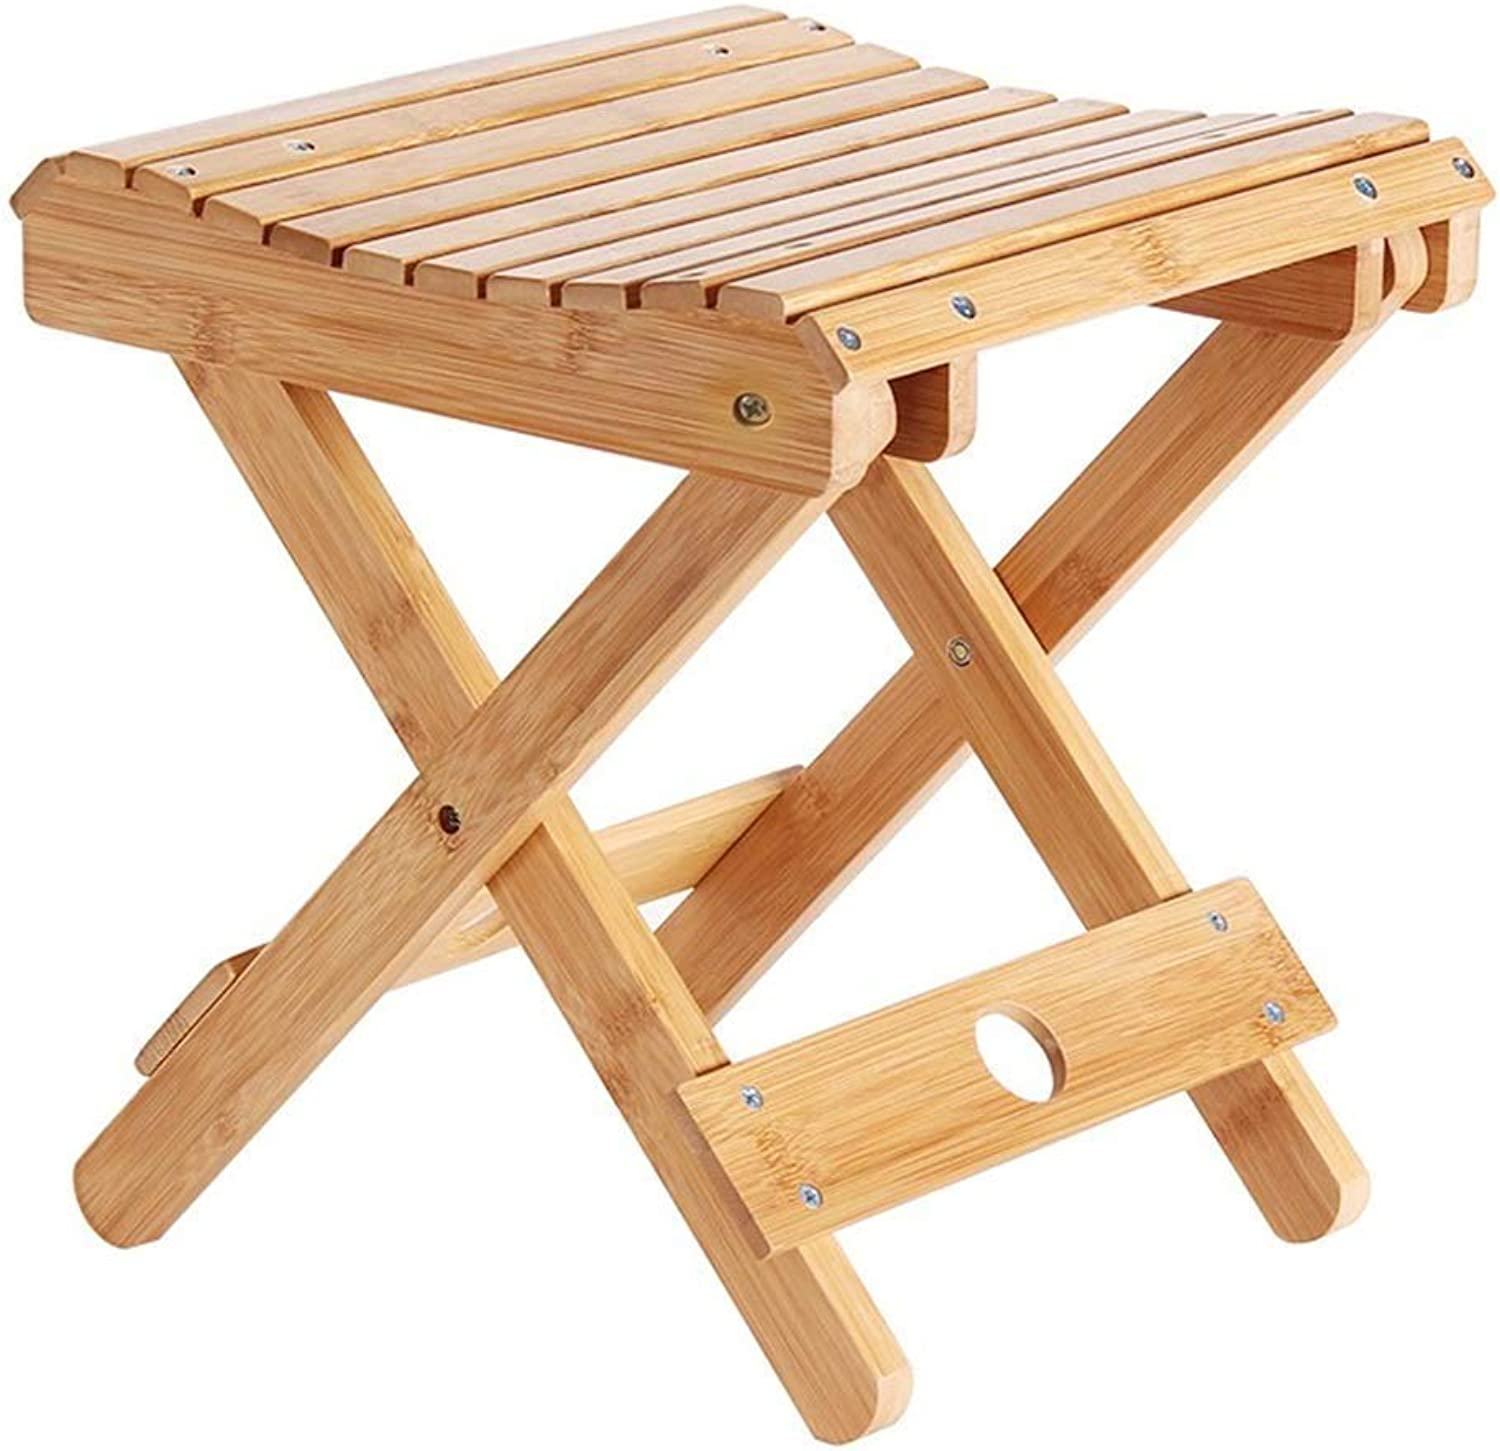 Footstool, Solid Wood Folding Stool Portable Home Mazar Chair Bench Square Stool